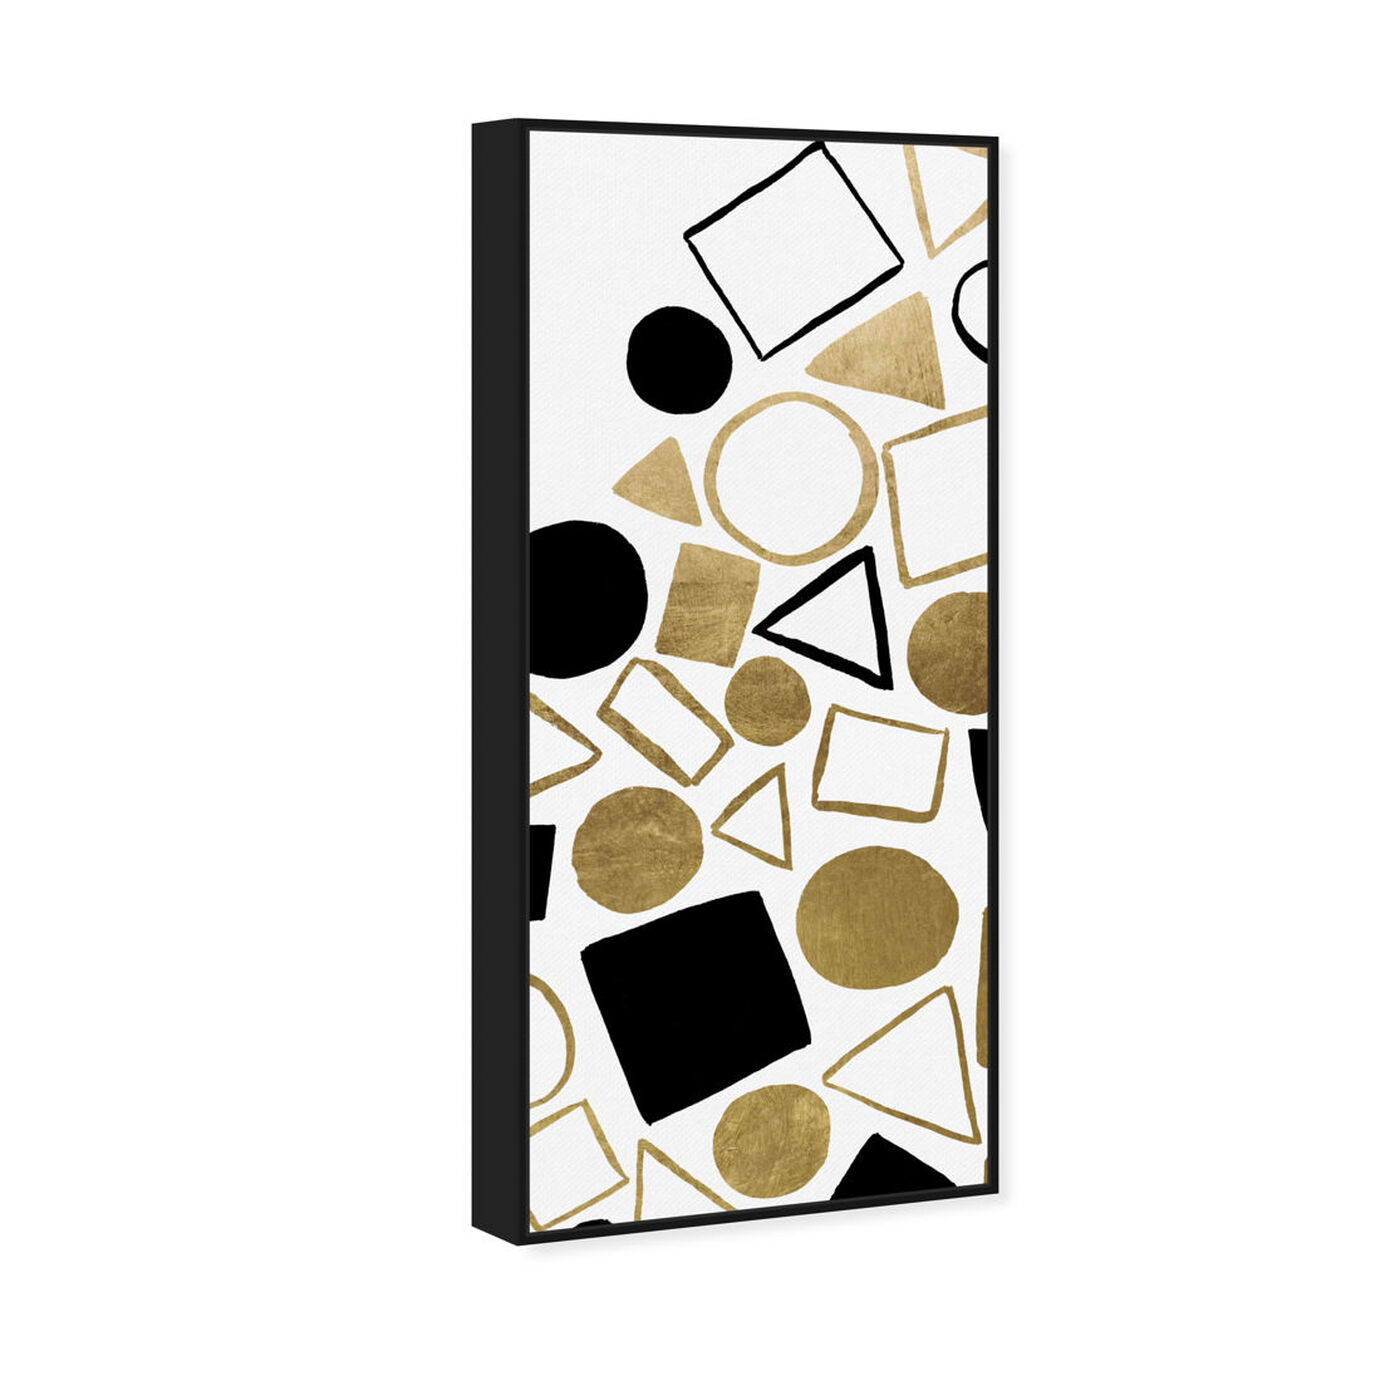 Angled view of Geometric Game featuring abstract and geometric art.